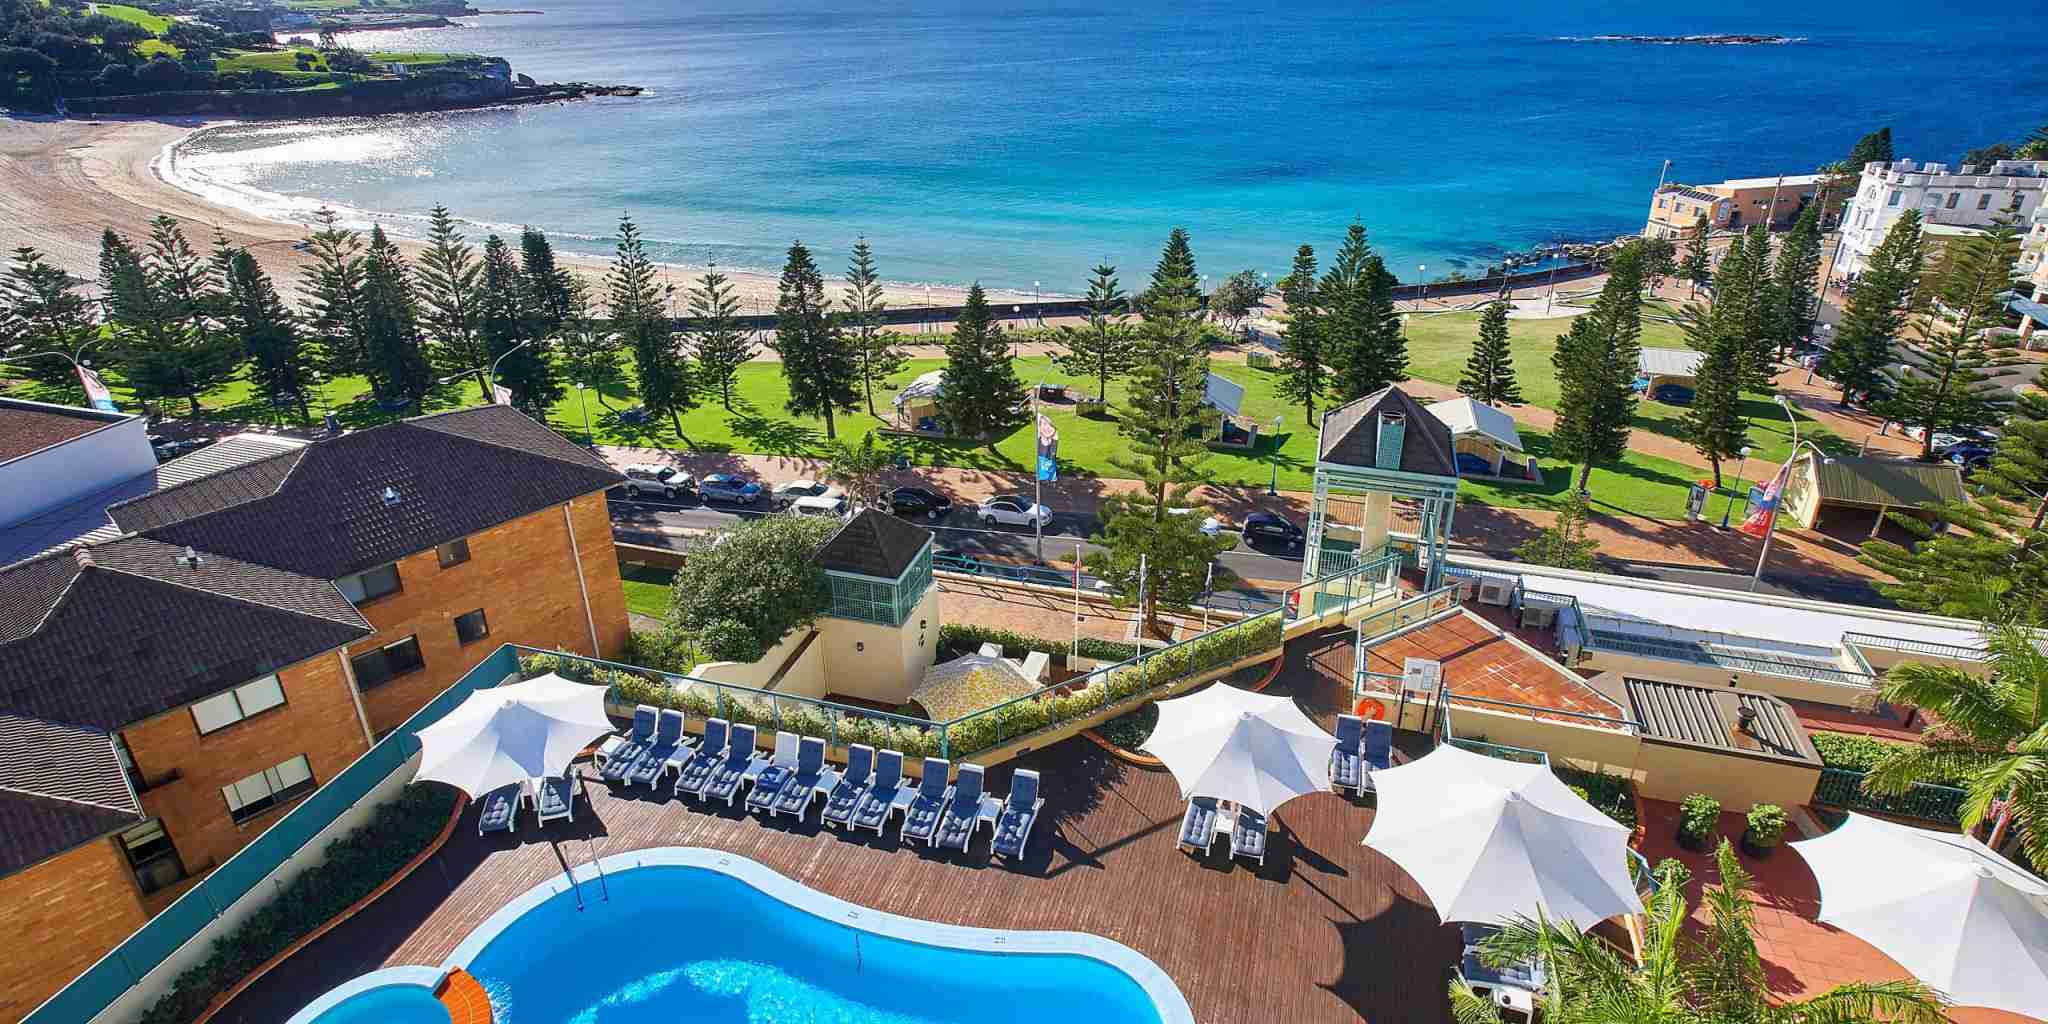 The Crowne Plaza Coogee Beach-Sydney has a fantastic location right by the beach. (Photo courtesy of the hotel)